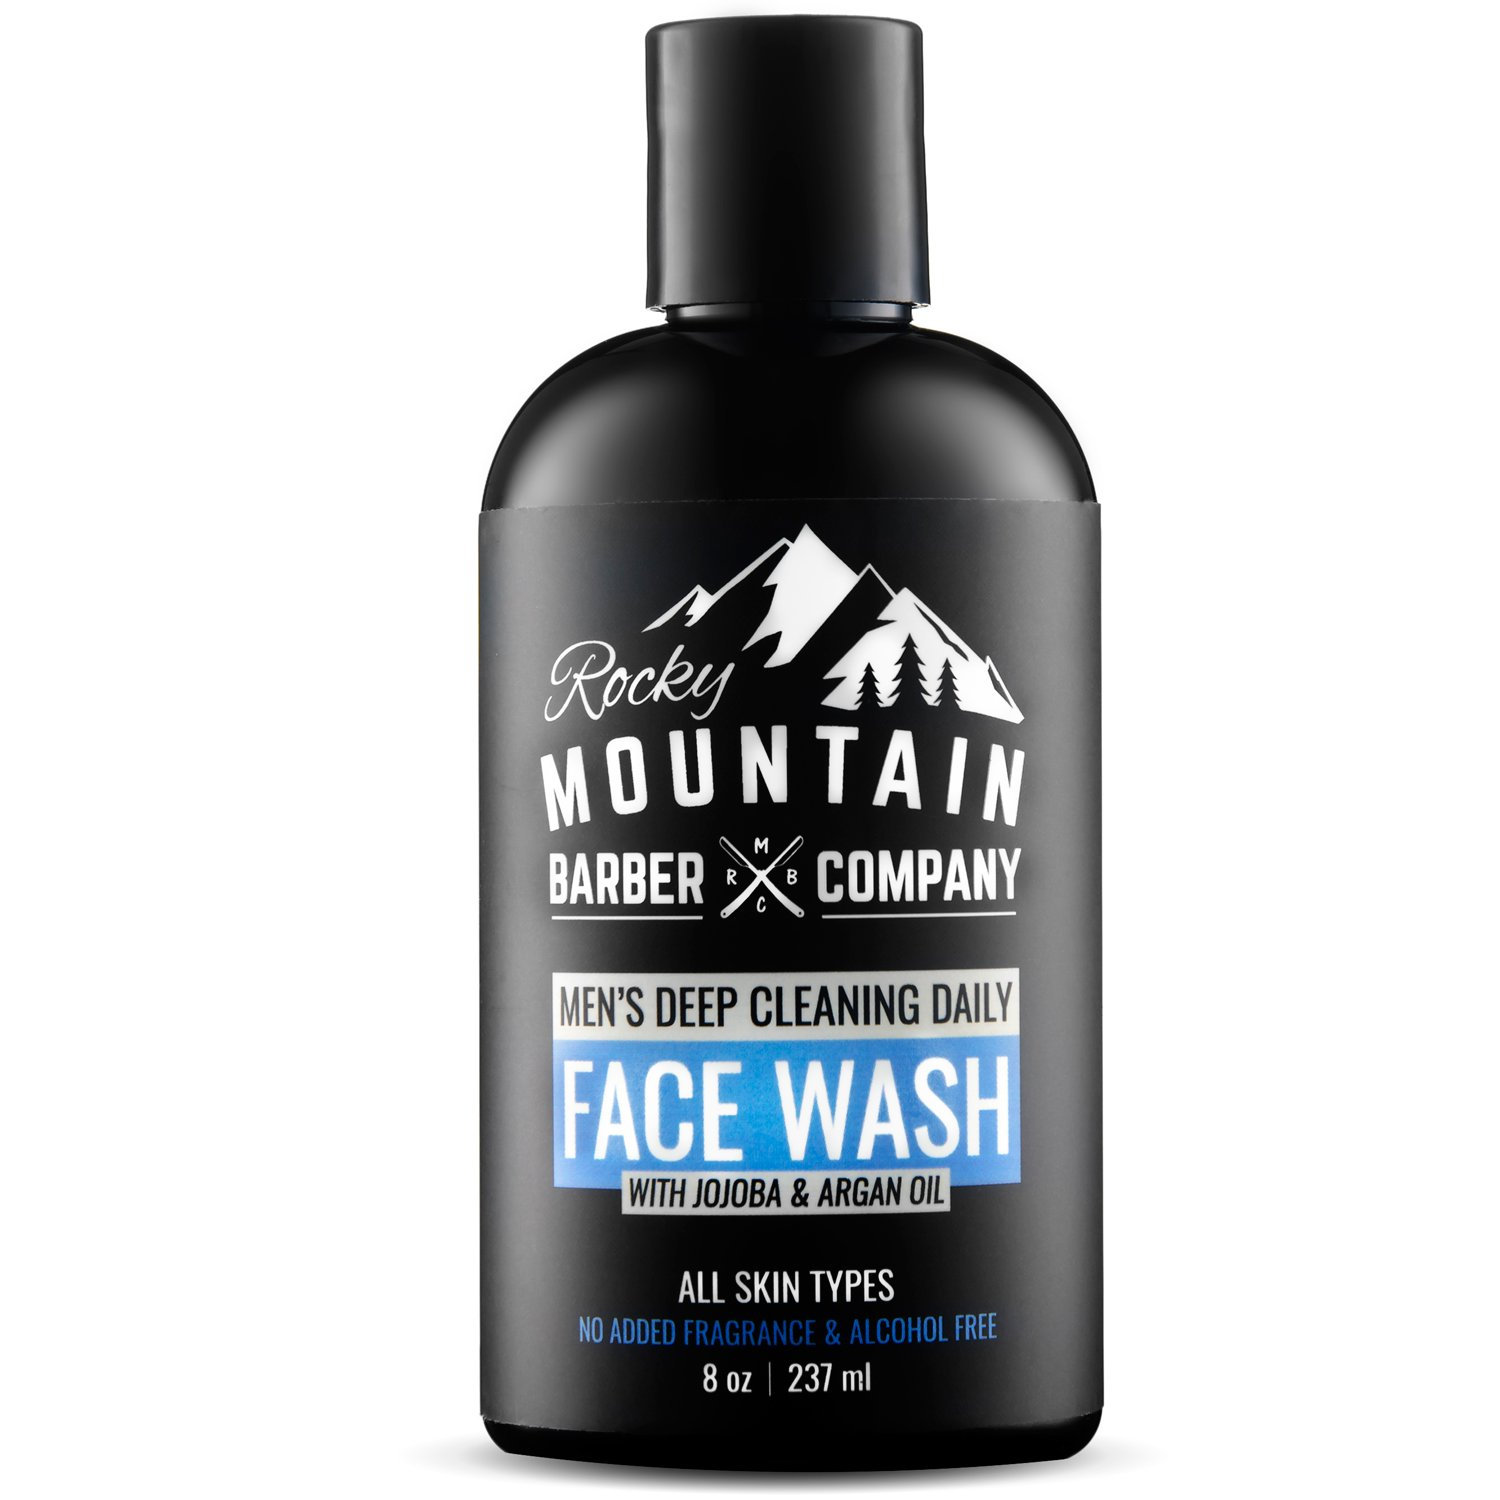 Face Wash For Men, Hydrating for Dry and Oily Skin with Natural Non-Irritating Sensitive Formula, Unscented for All Skin Types, Paraben & SLS Free